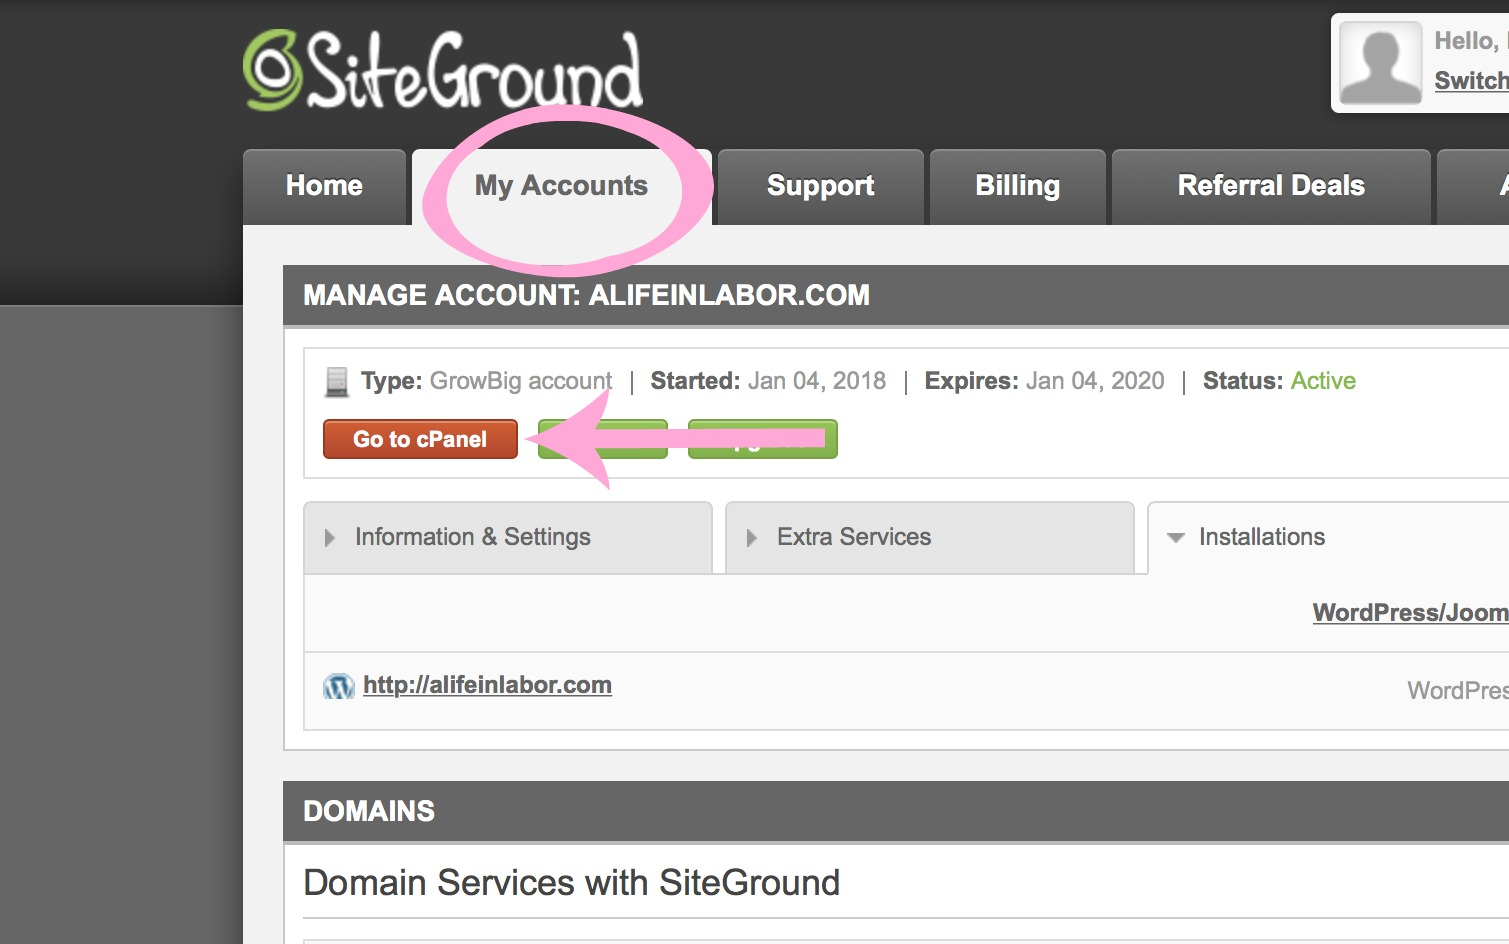 how to start a blog. how to set up wordpress through SiteGround. Why choose SiteGround to host my blog.